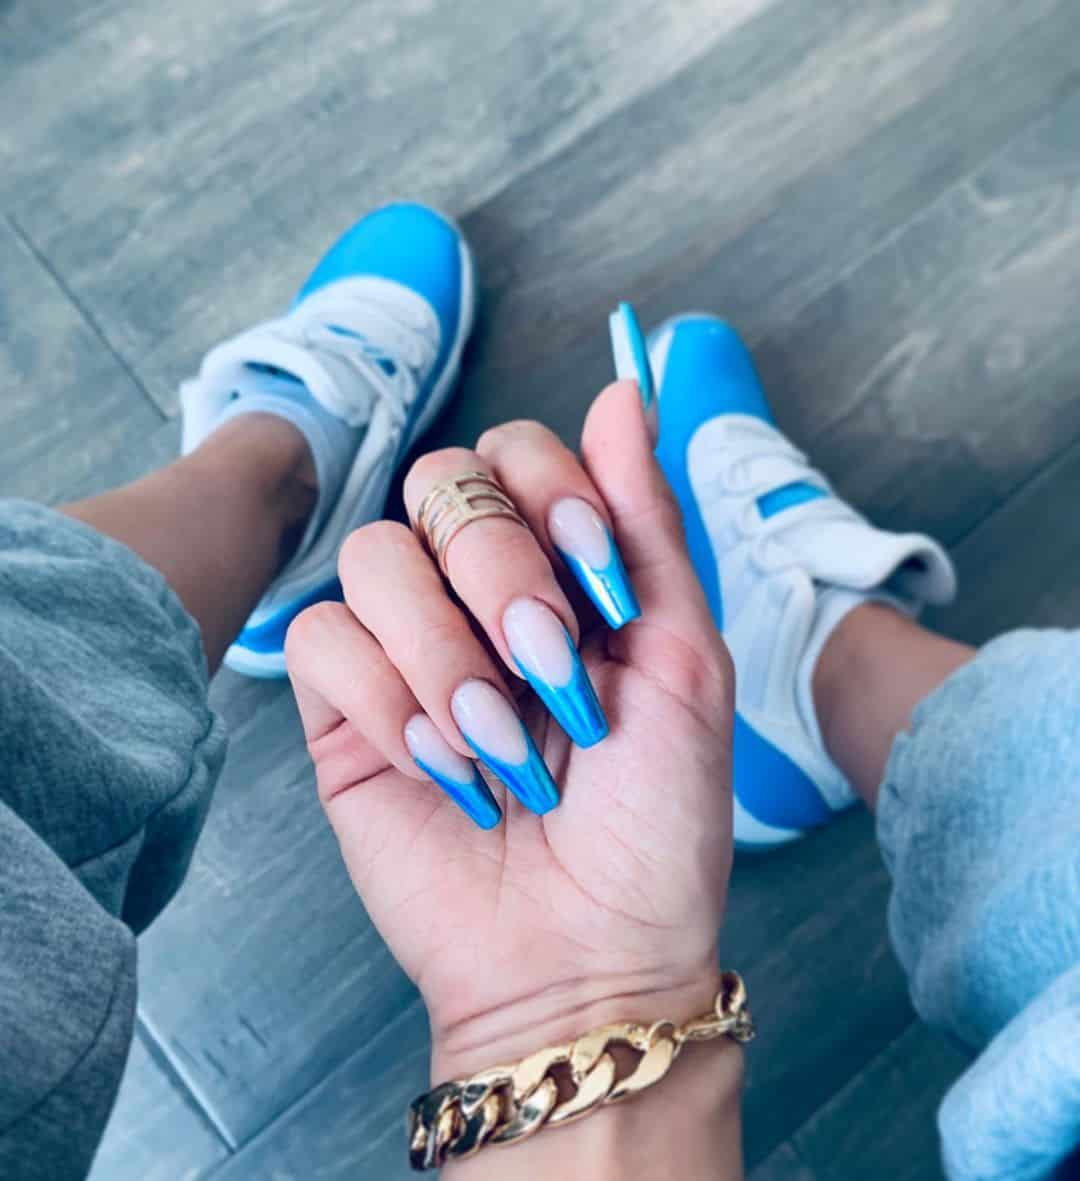 Warm Up Your Hands With These Perfect Nail Designs For The Winter - The Blues